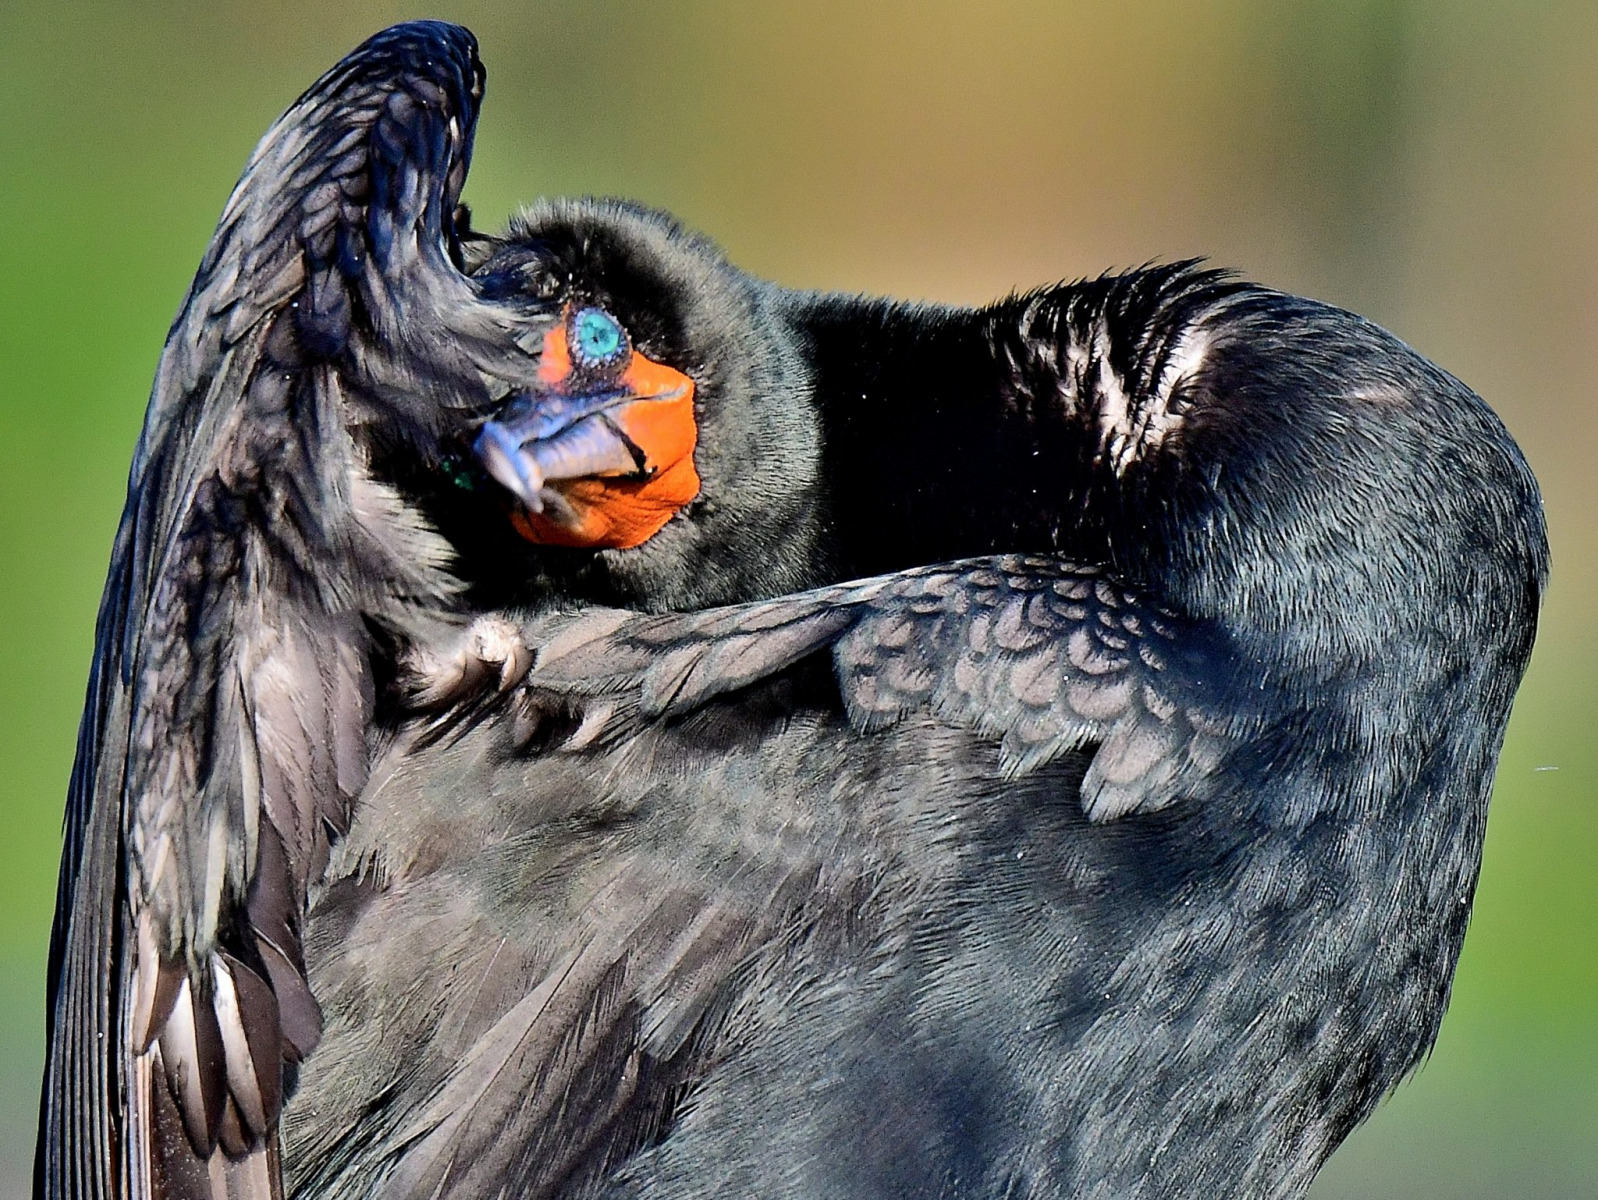 Double-crested Cormorant by Marilynne Strazzeri